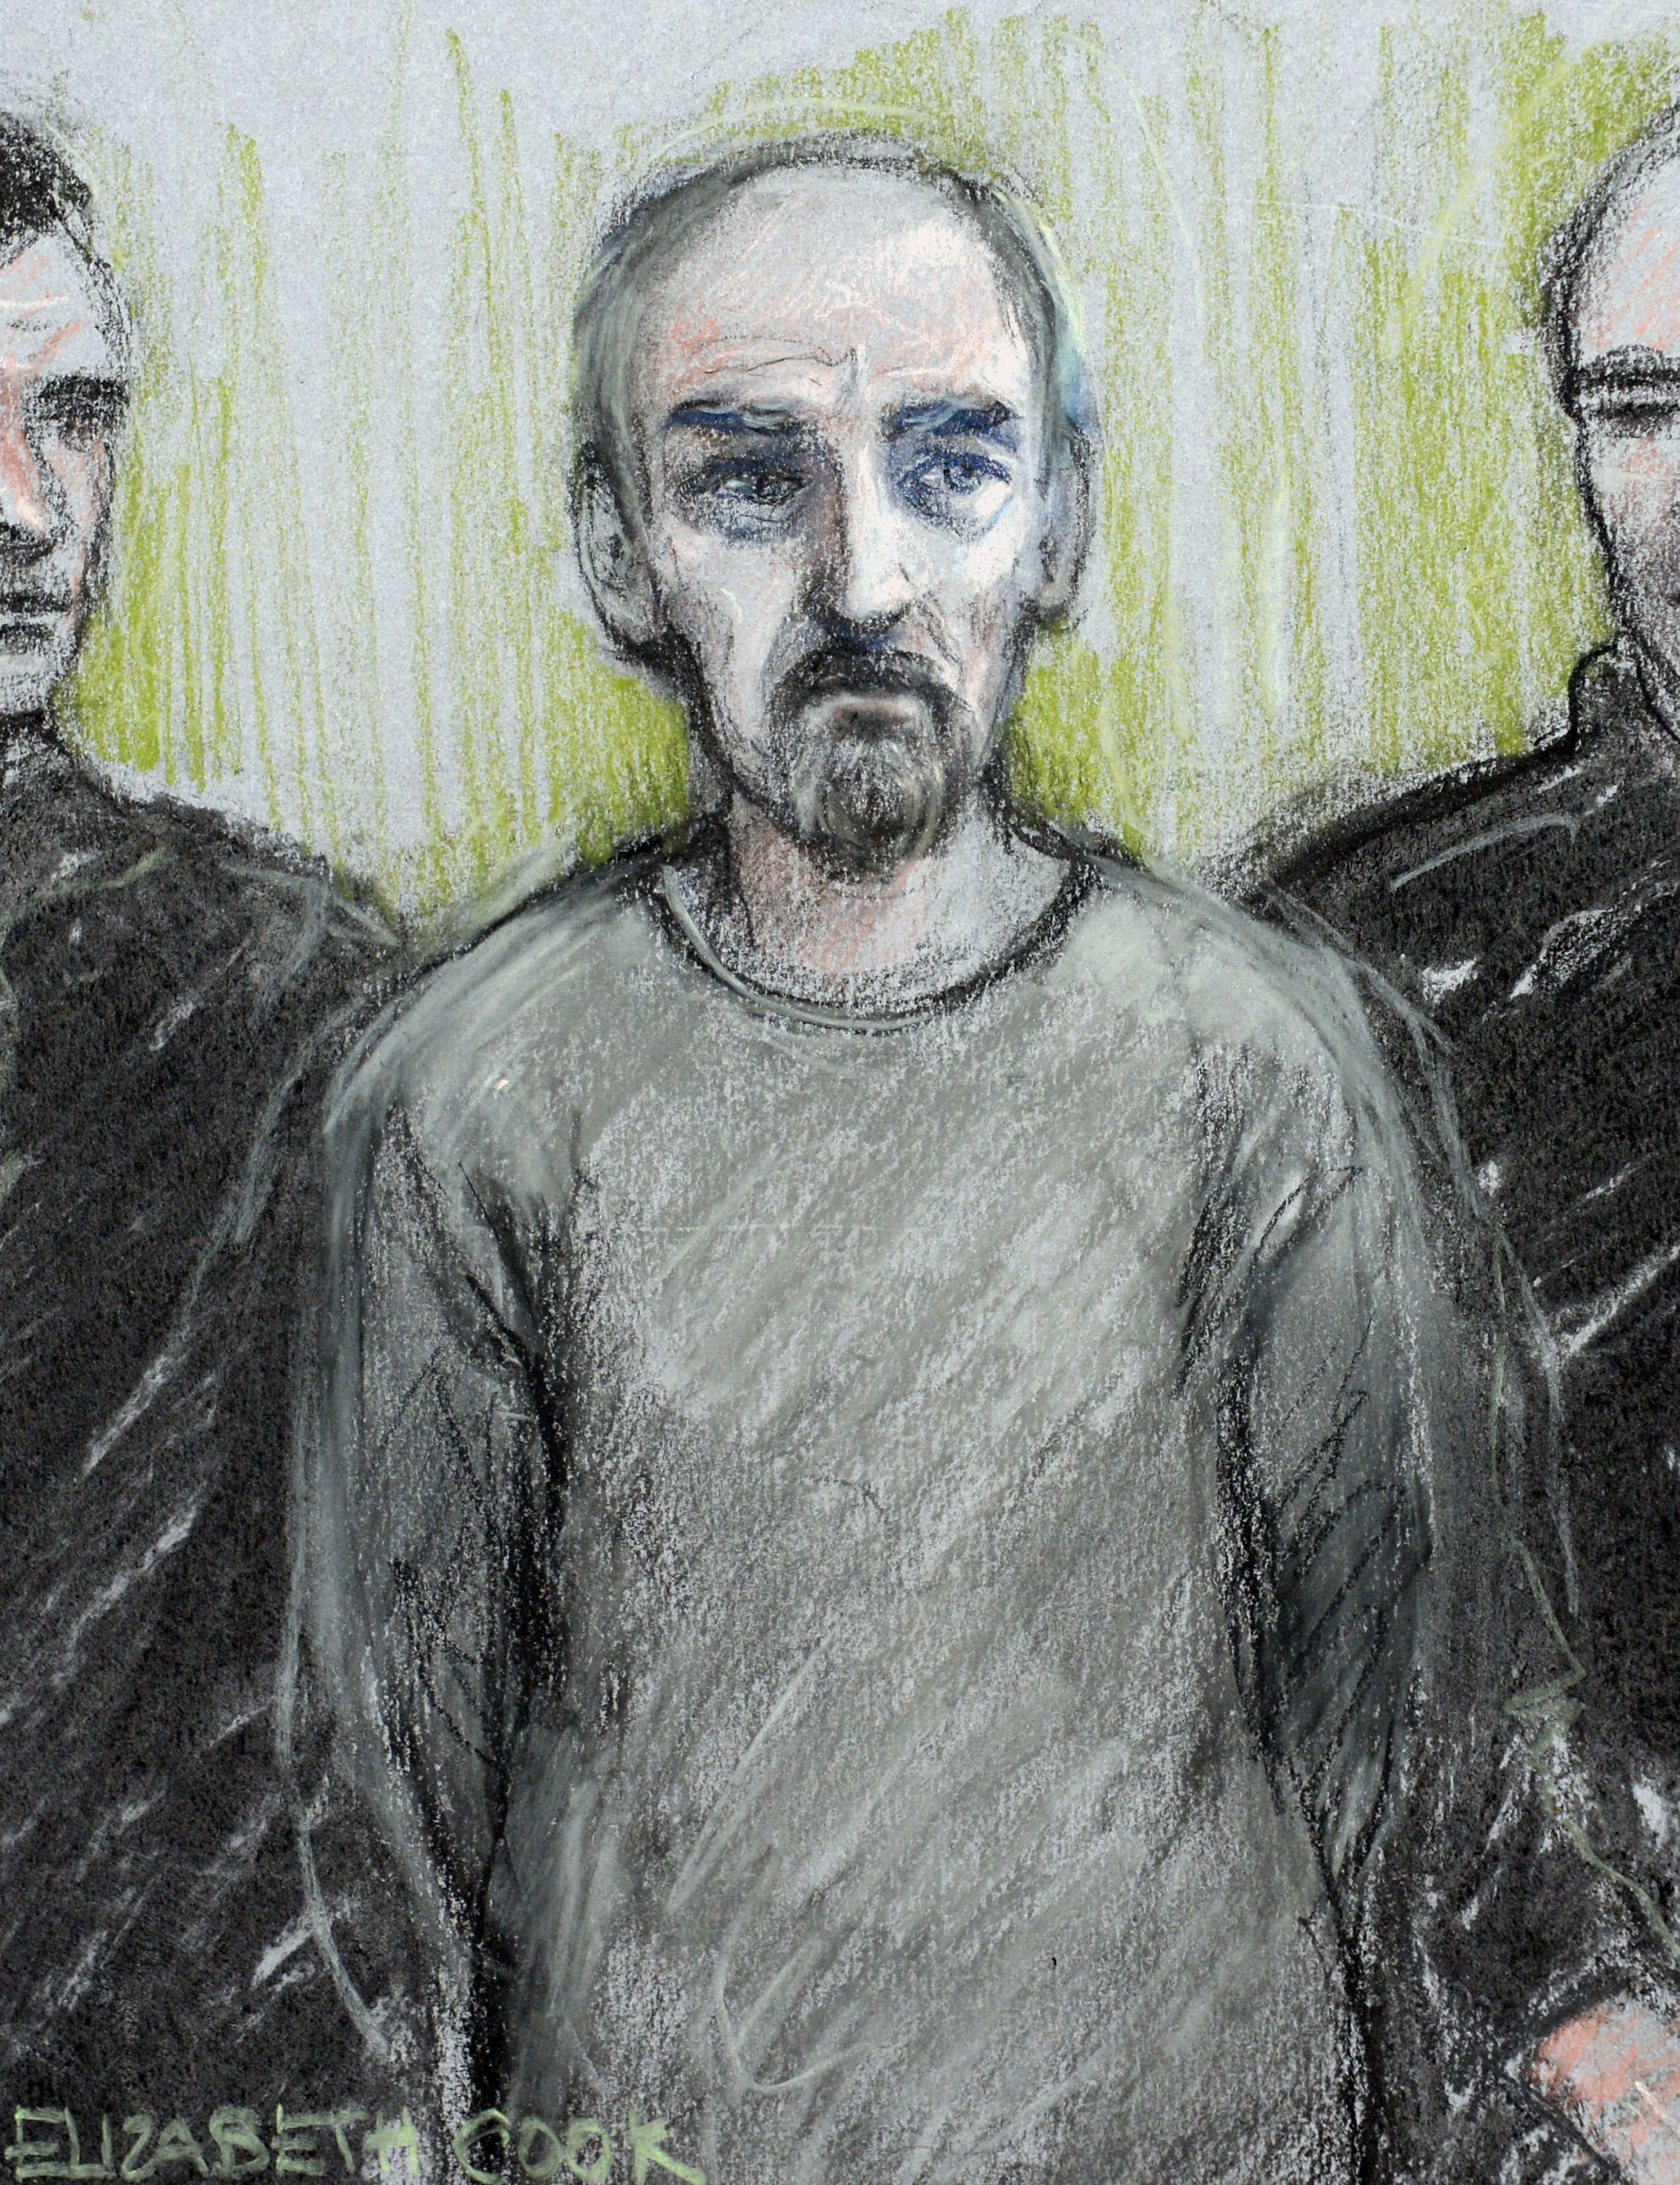 A court sketch of Thomas Mair who is due to enter a plea today over the murder of MP Jo